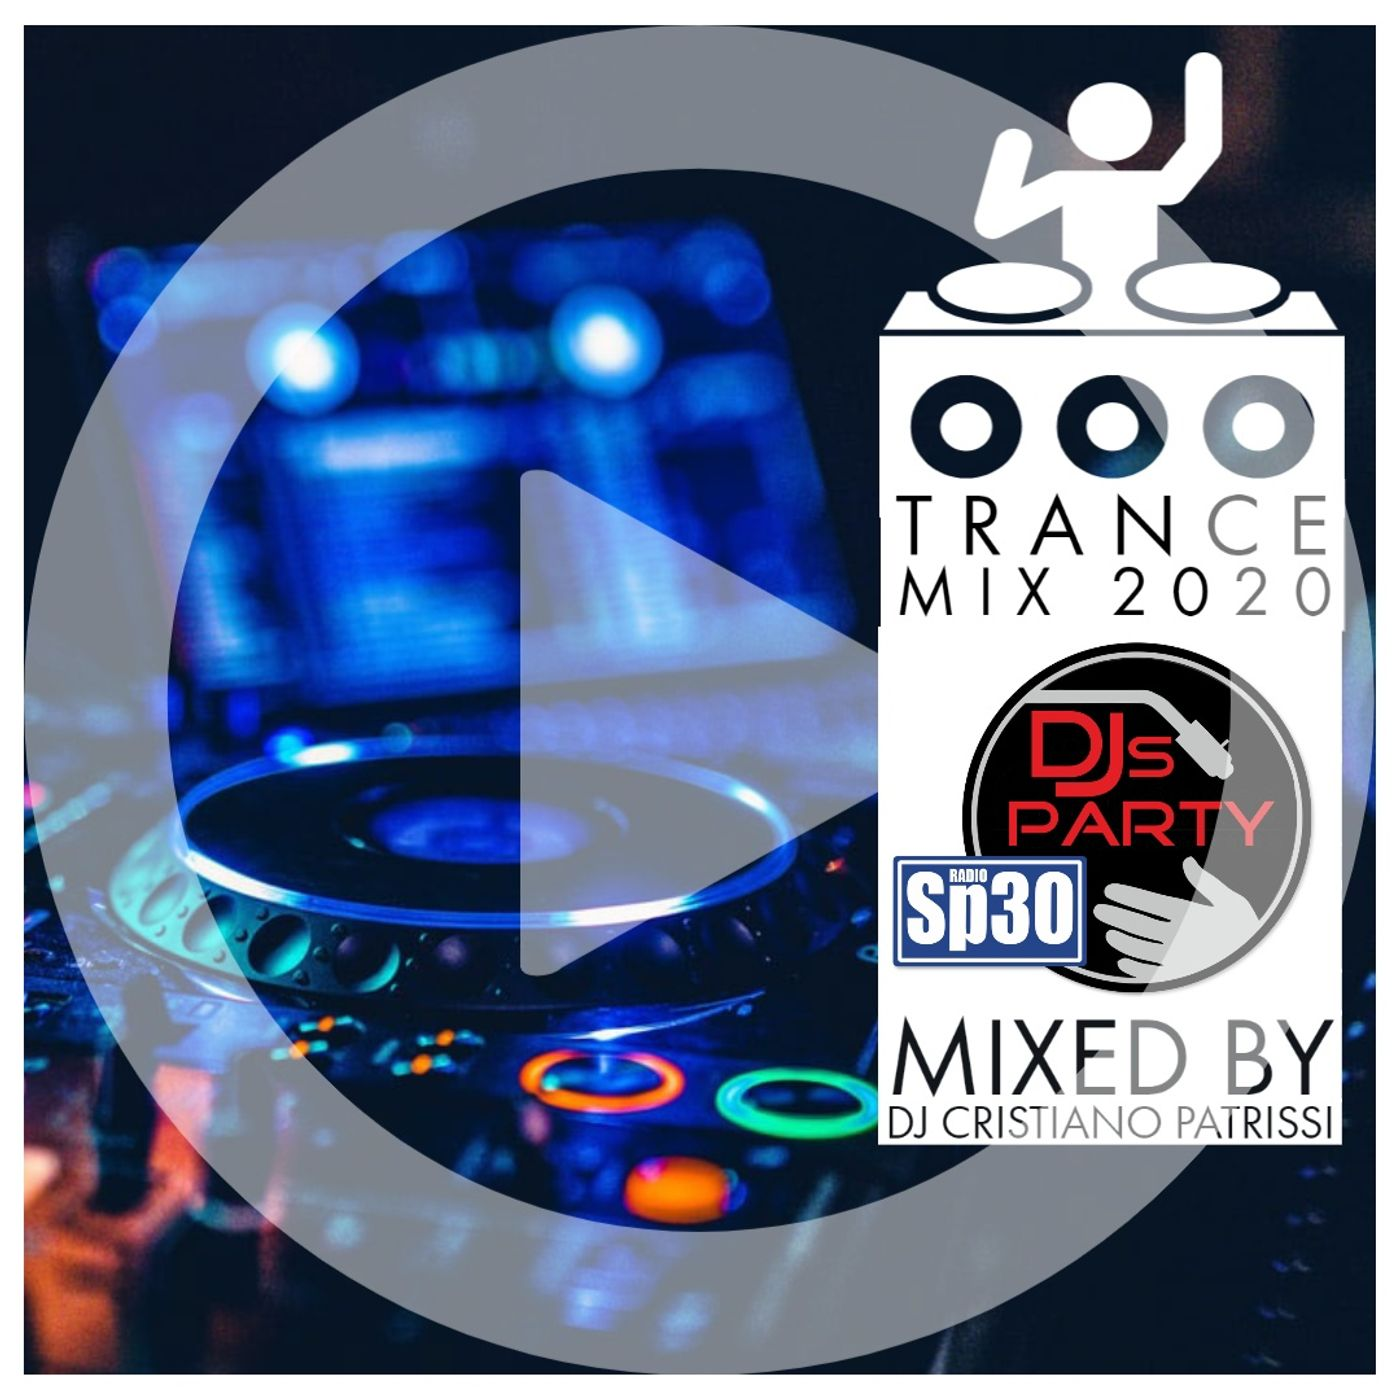 #djsparty - ST.2 EP.24 - Trance Music #3